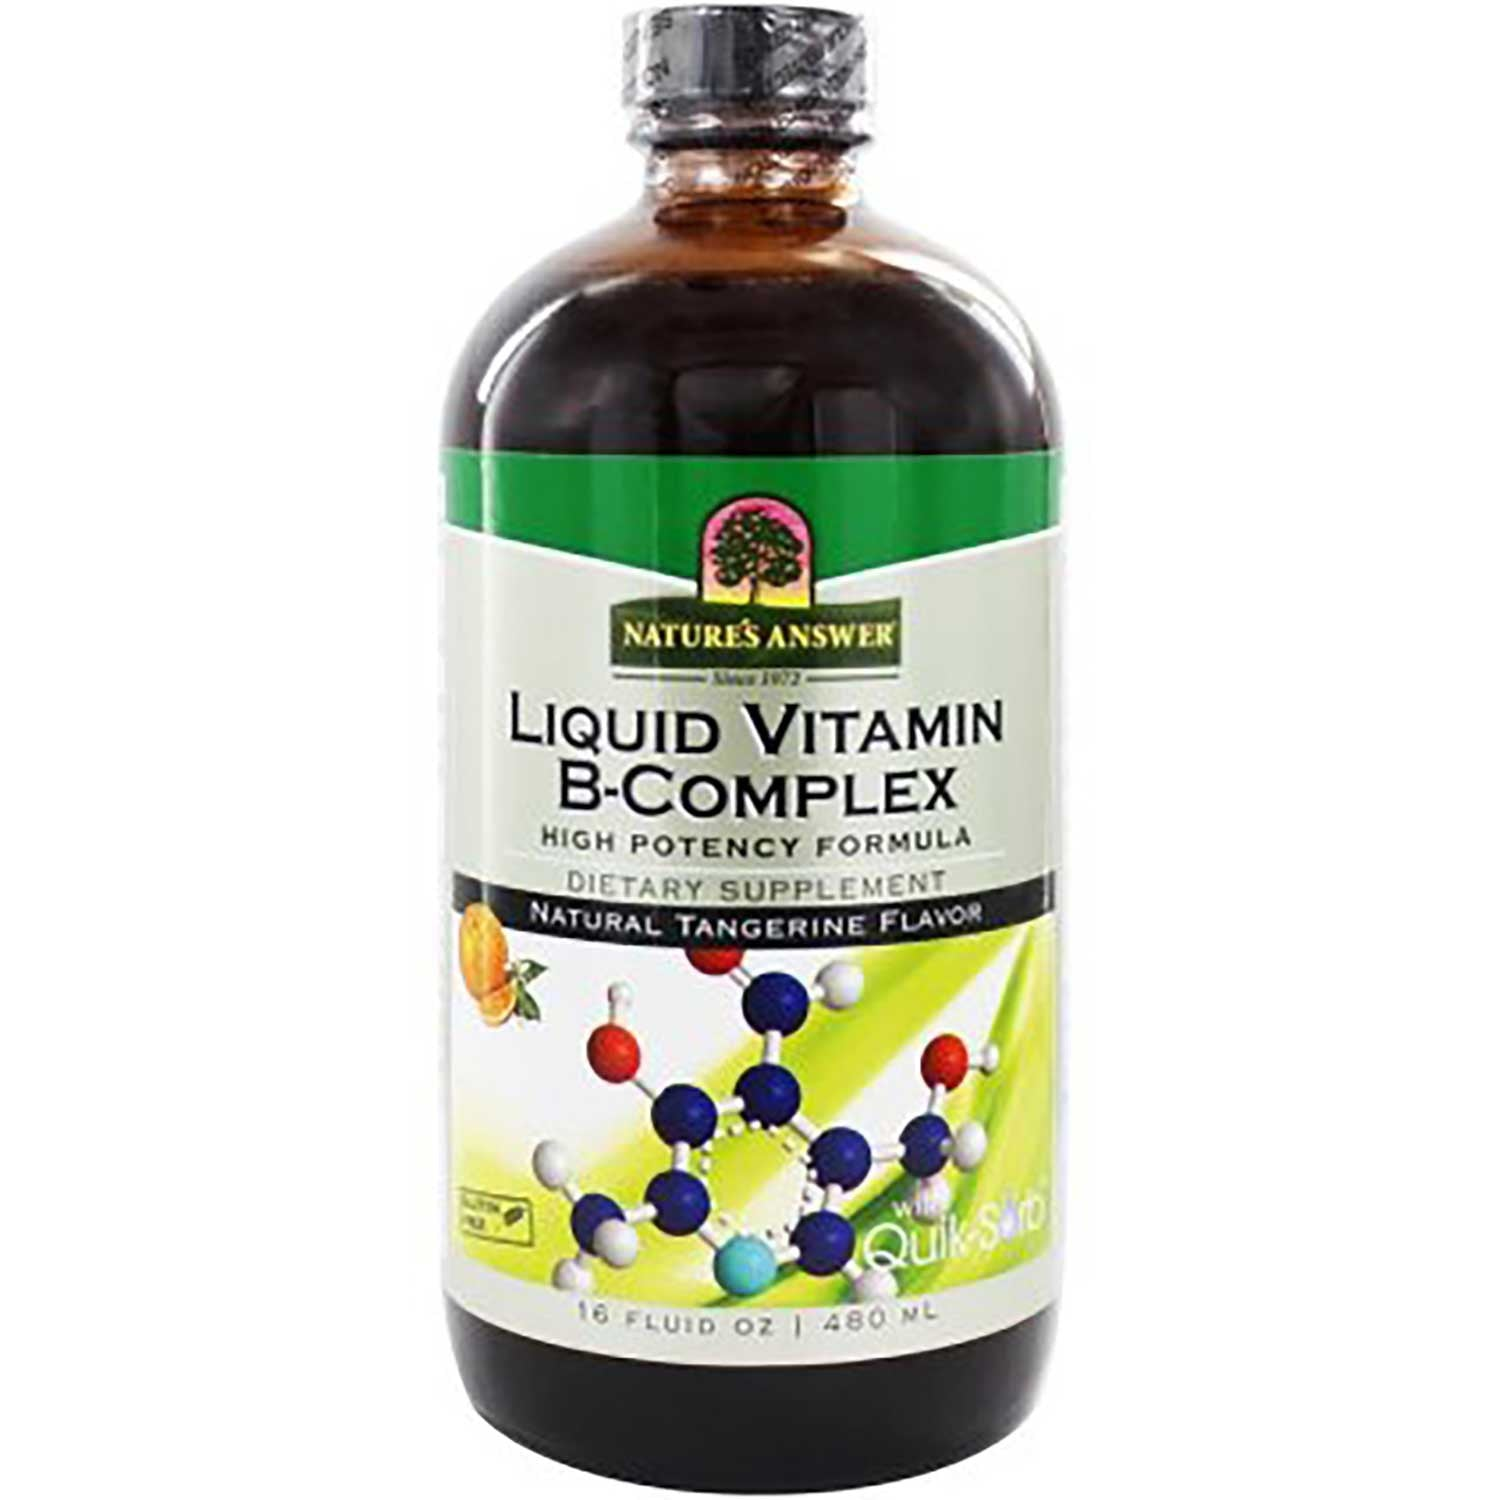 Nature's Answer Platinum Liquid Vitamin B Complex - Natural Tangerine Flavor, 480 ml.-NaturesWisdom